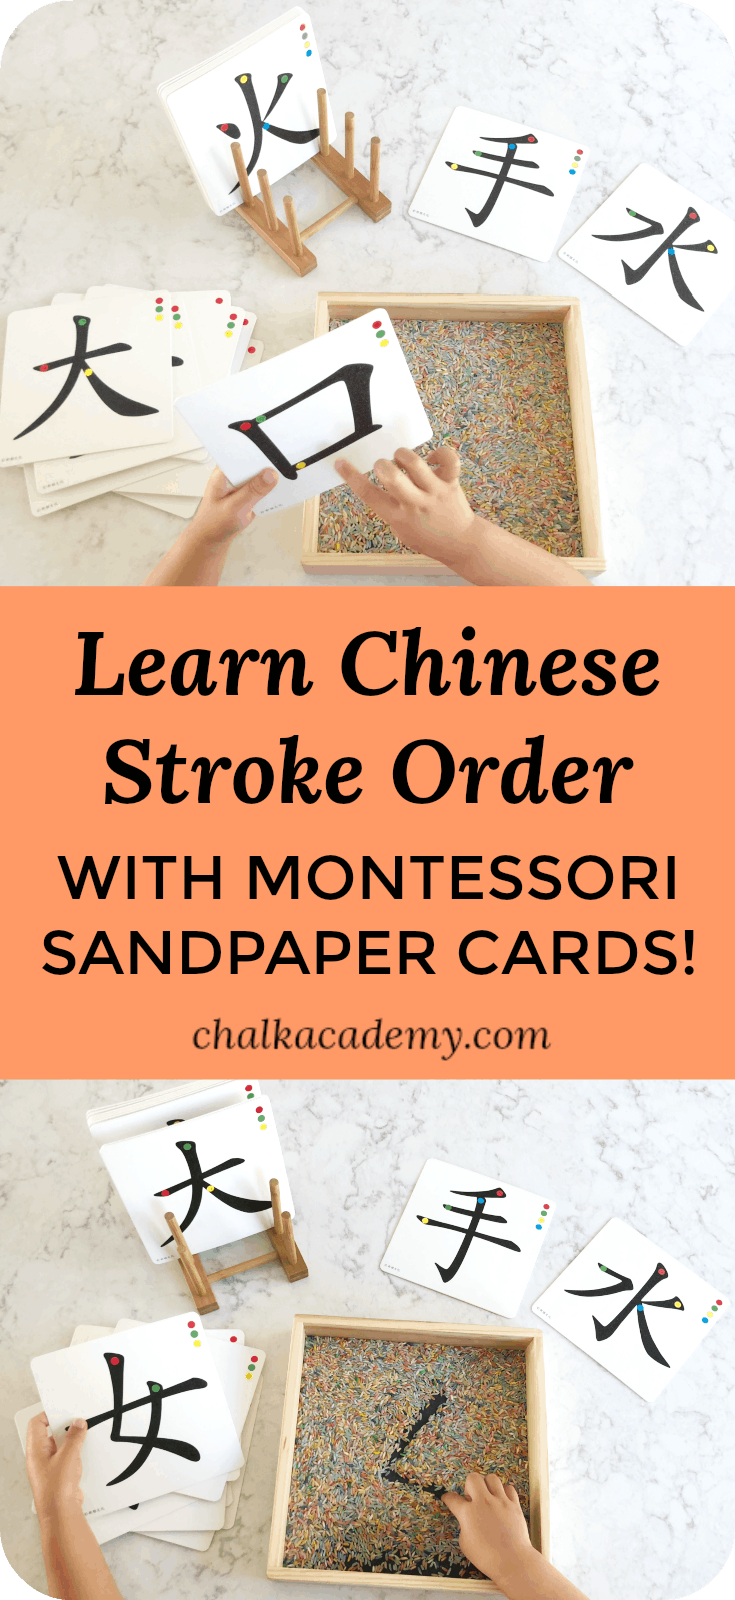 Montessori sandpaper cards are a fun way to learn Chinese stroke order!  Tactile input helps with remembering the correct writing order.